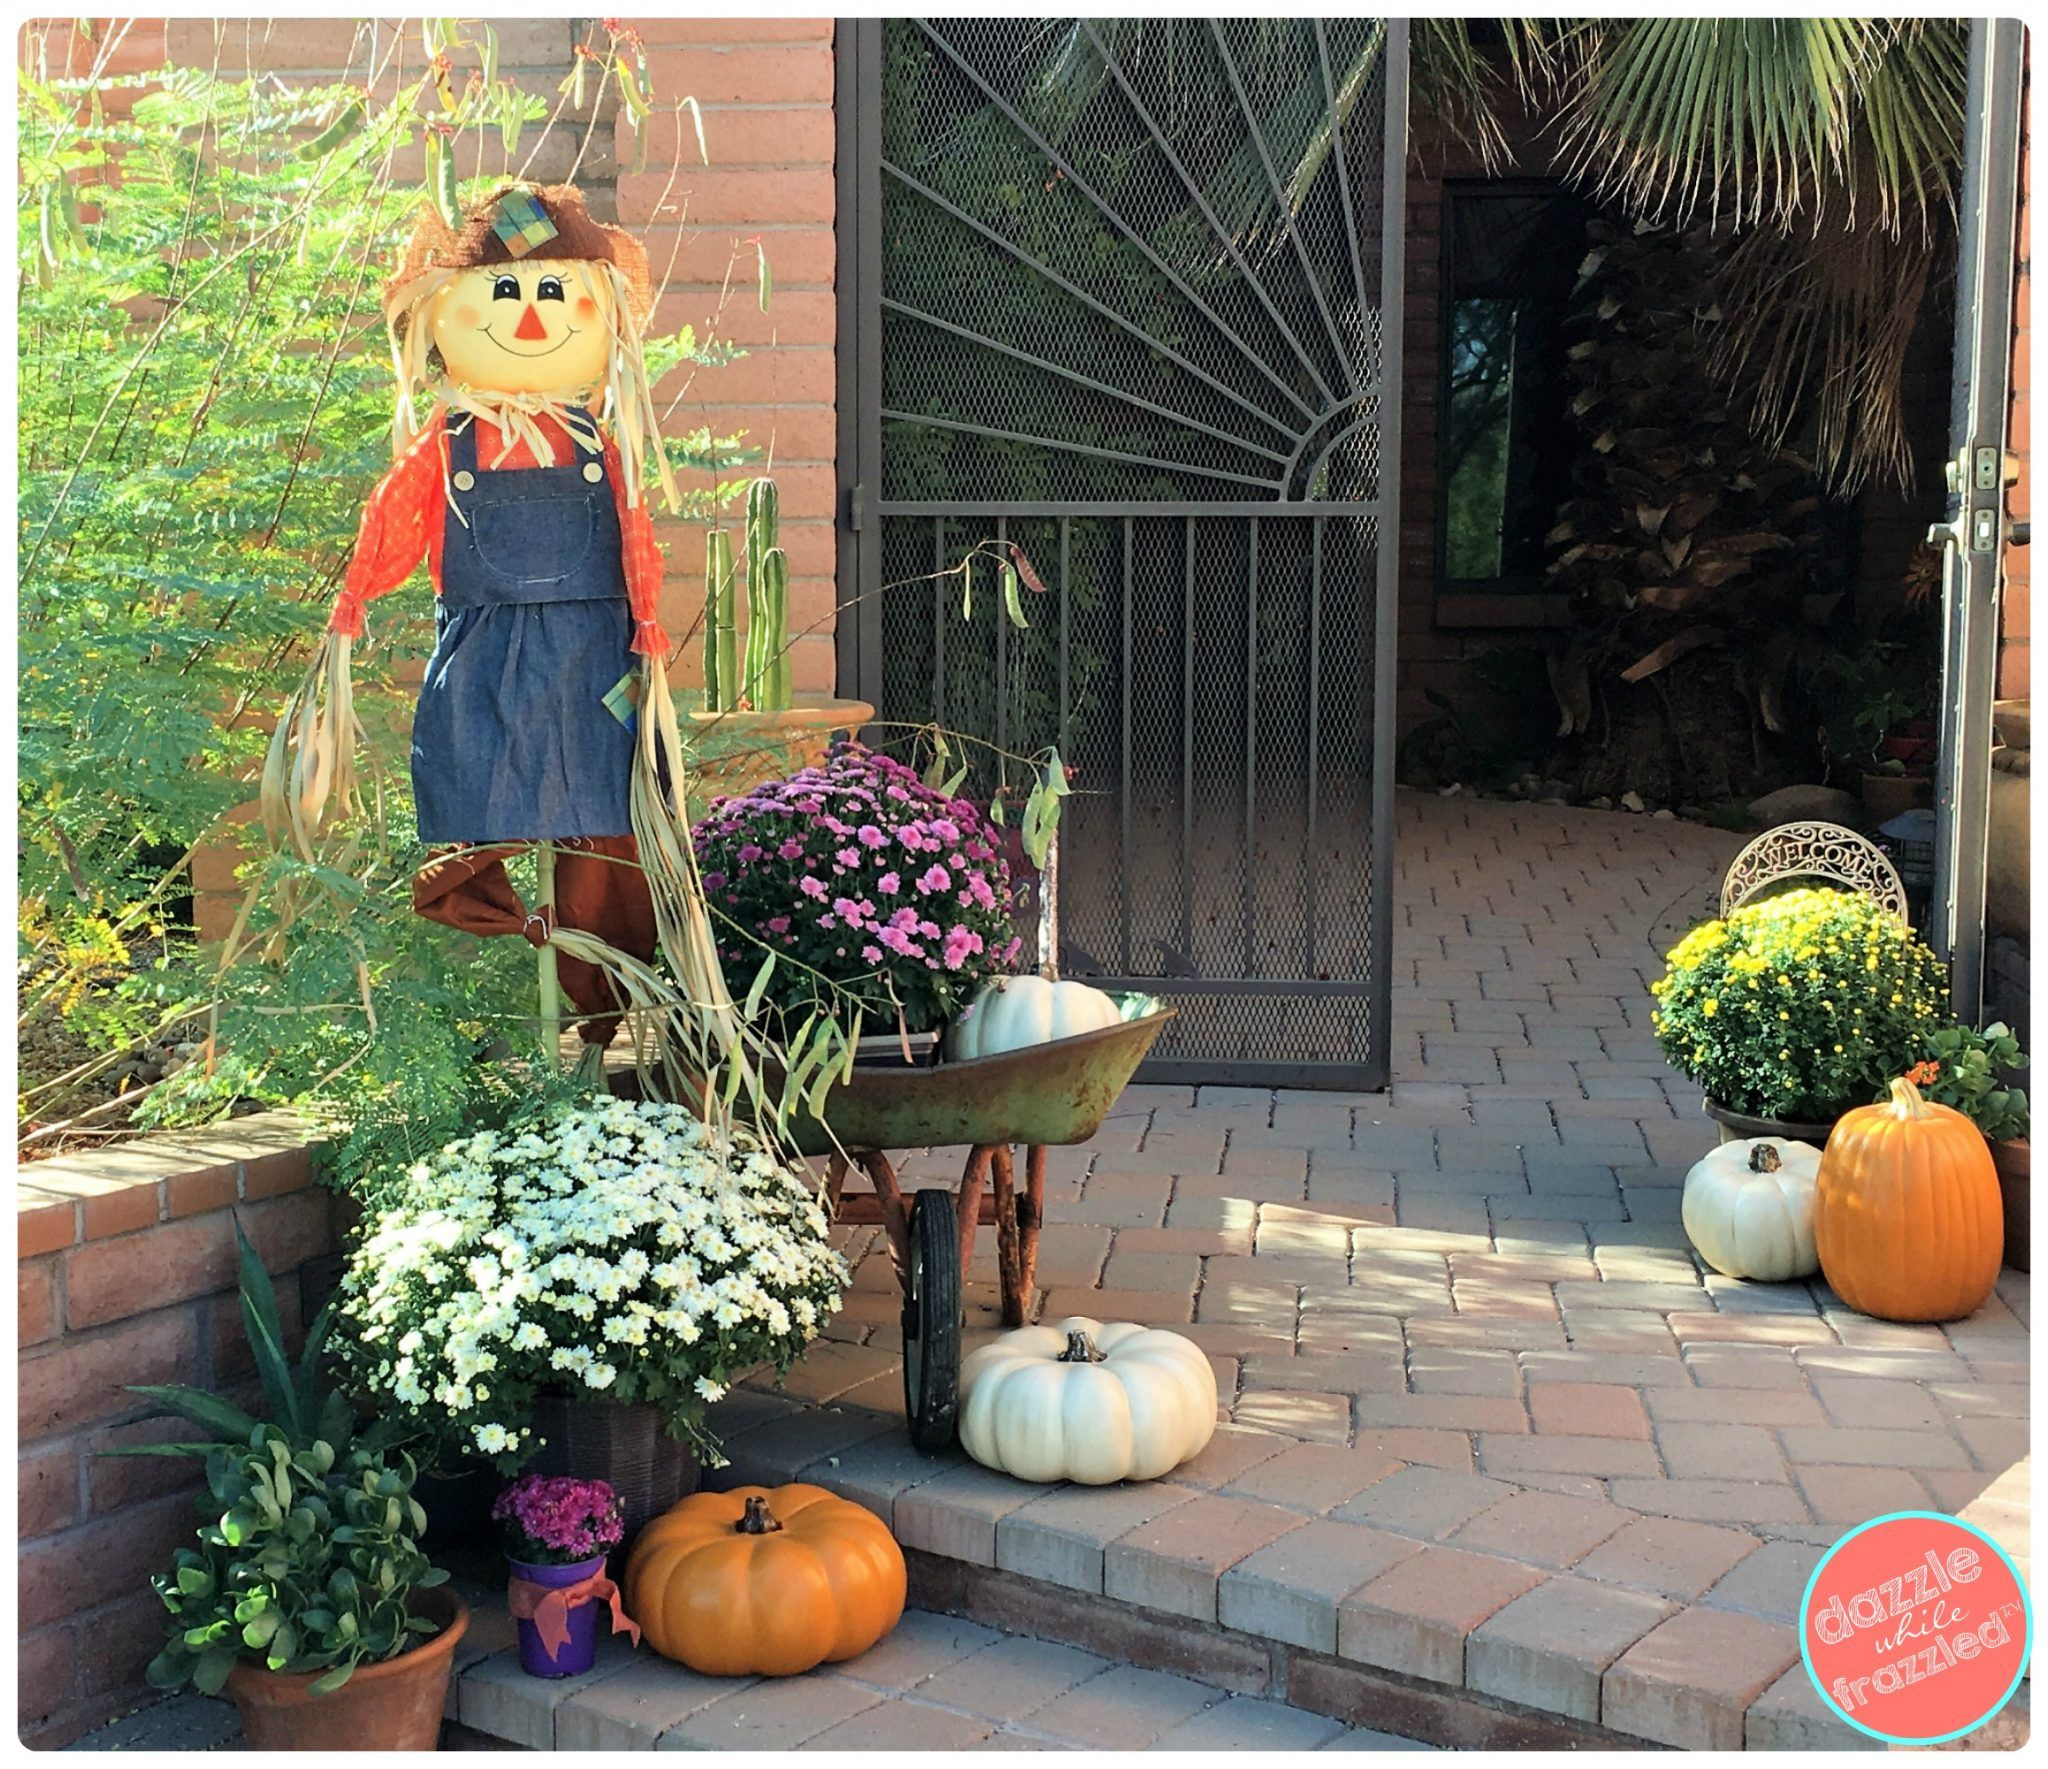 Outdoor Front Porch Decorating Ideas For Autumn And The Harvest Season Easy And Affordable Fa Fall Decorations Porch Front Porch Decorating Fall Outdoor Decor